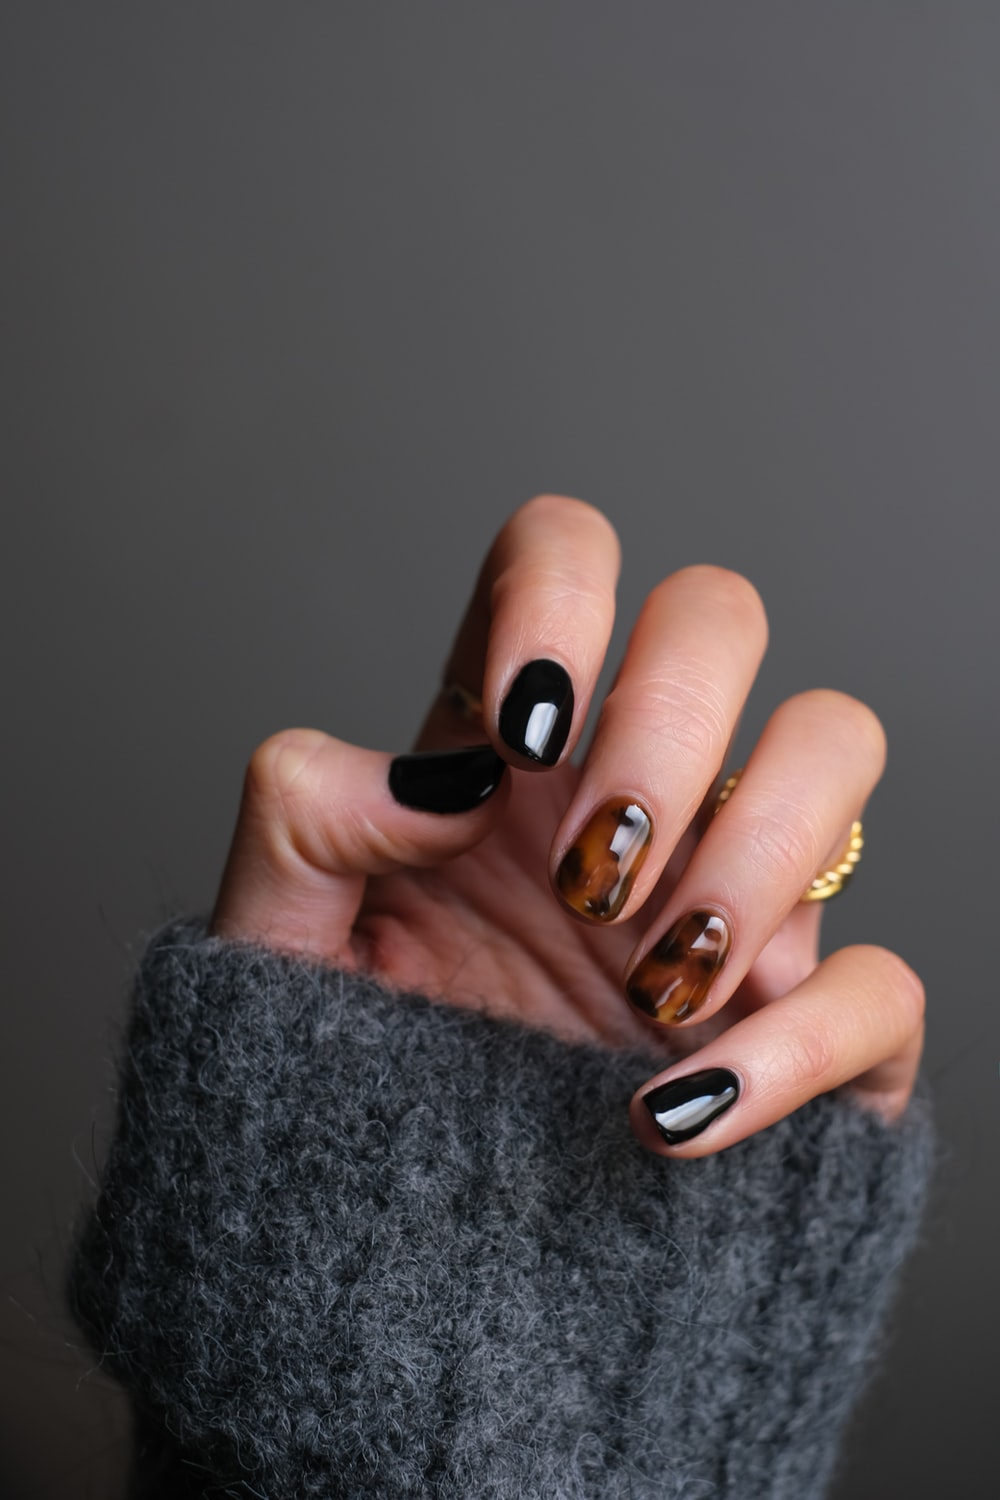 person wearing gold ring holding black textile